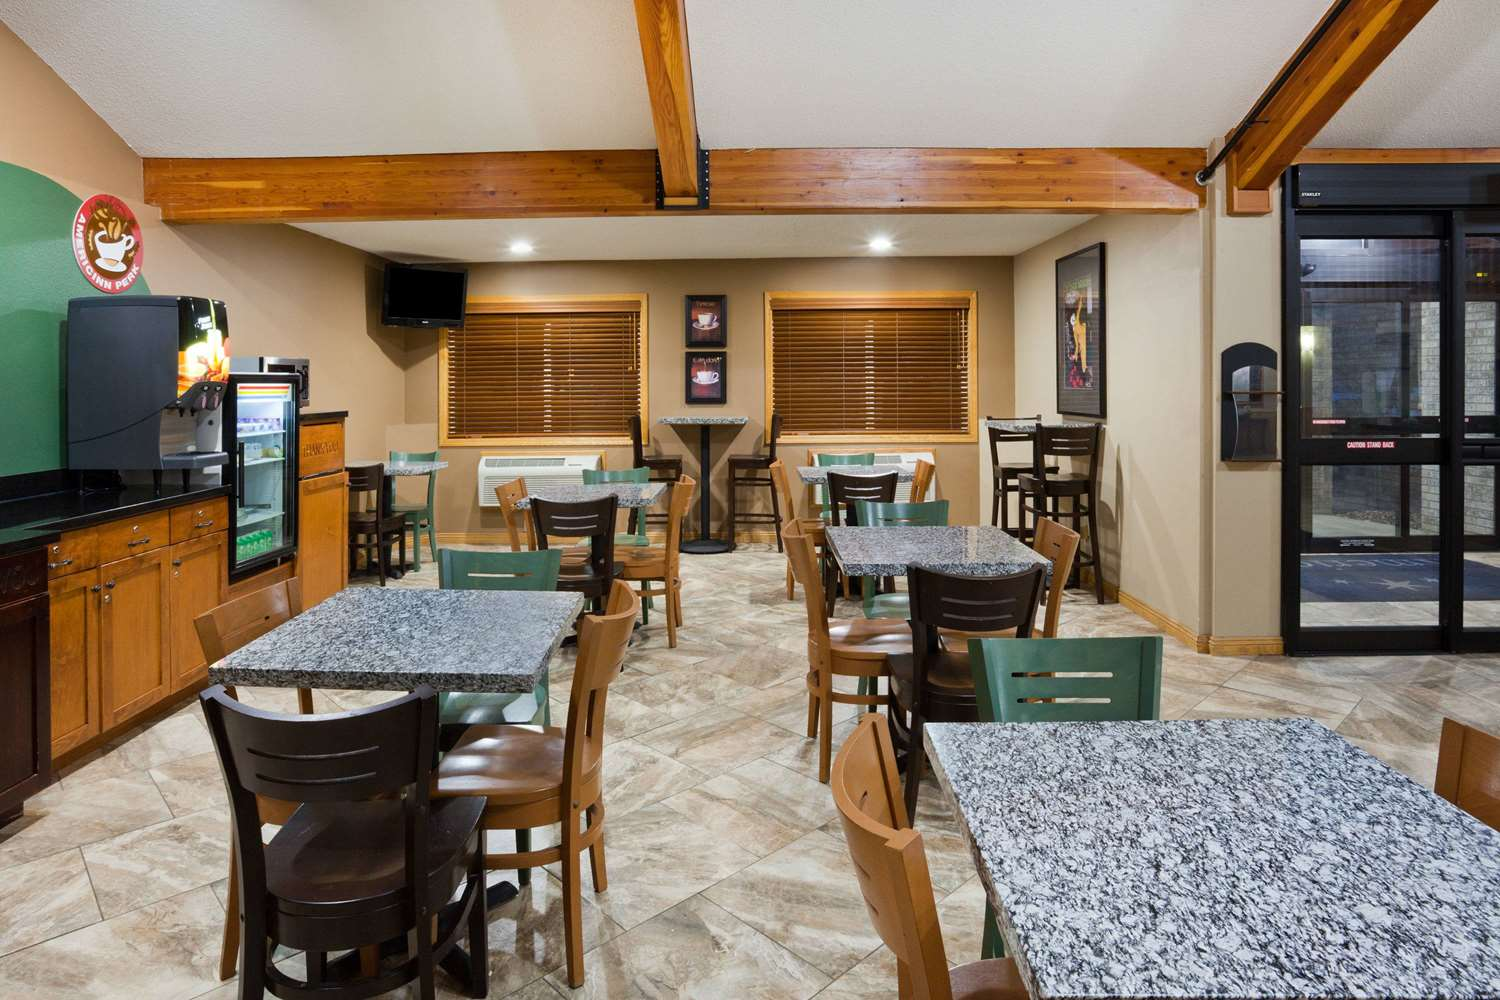 proam - AmericInn Lodge & Suites Sartell